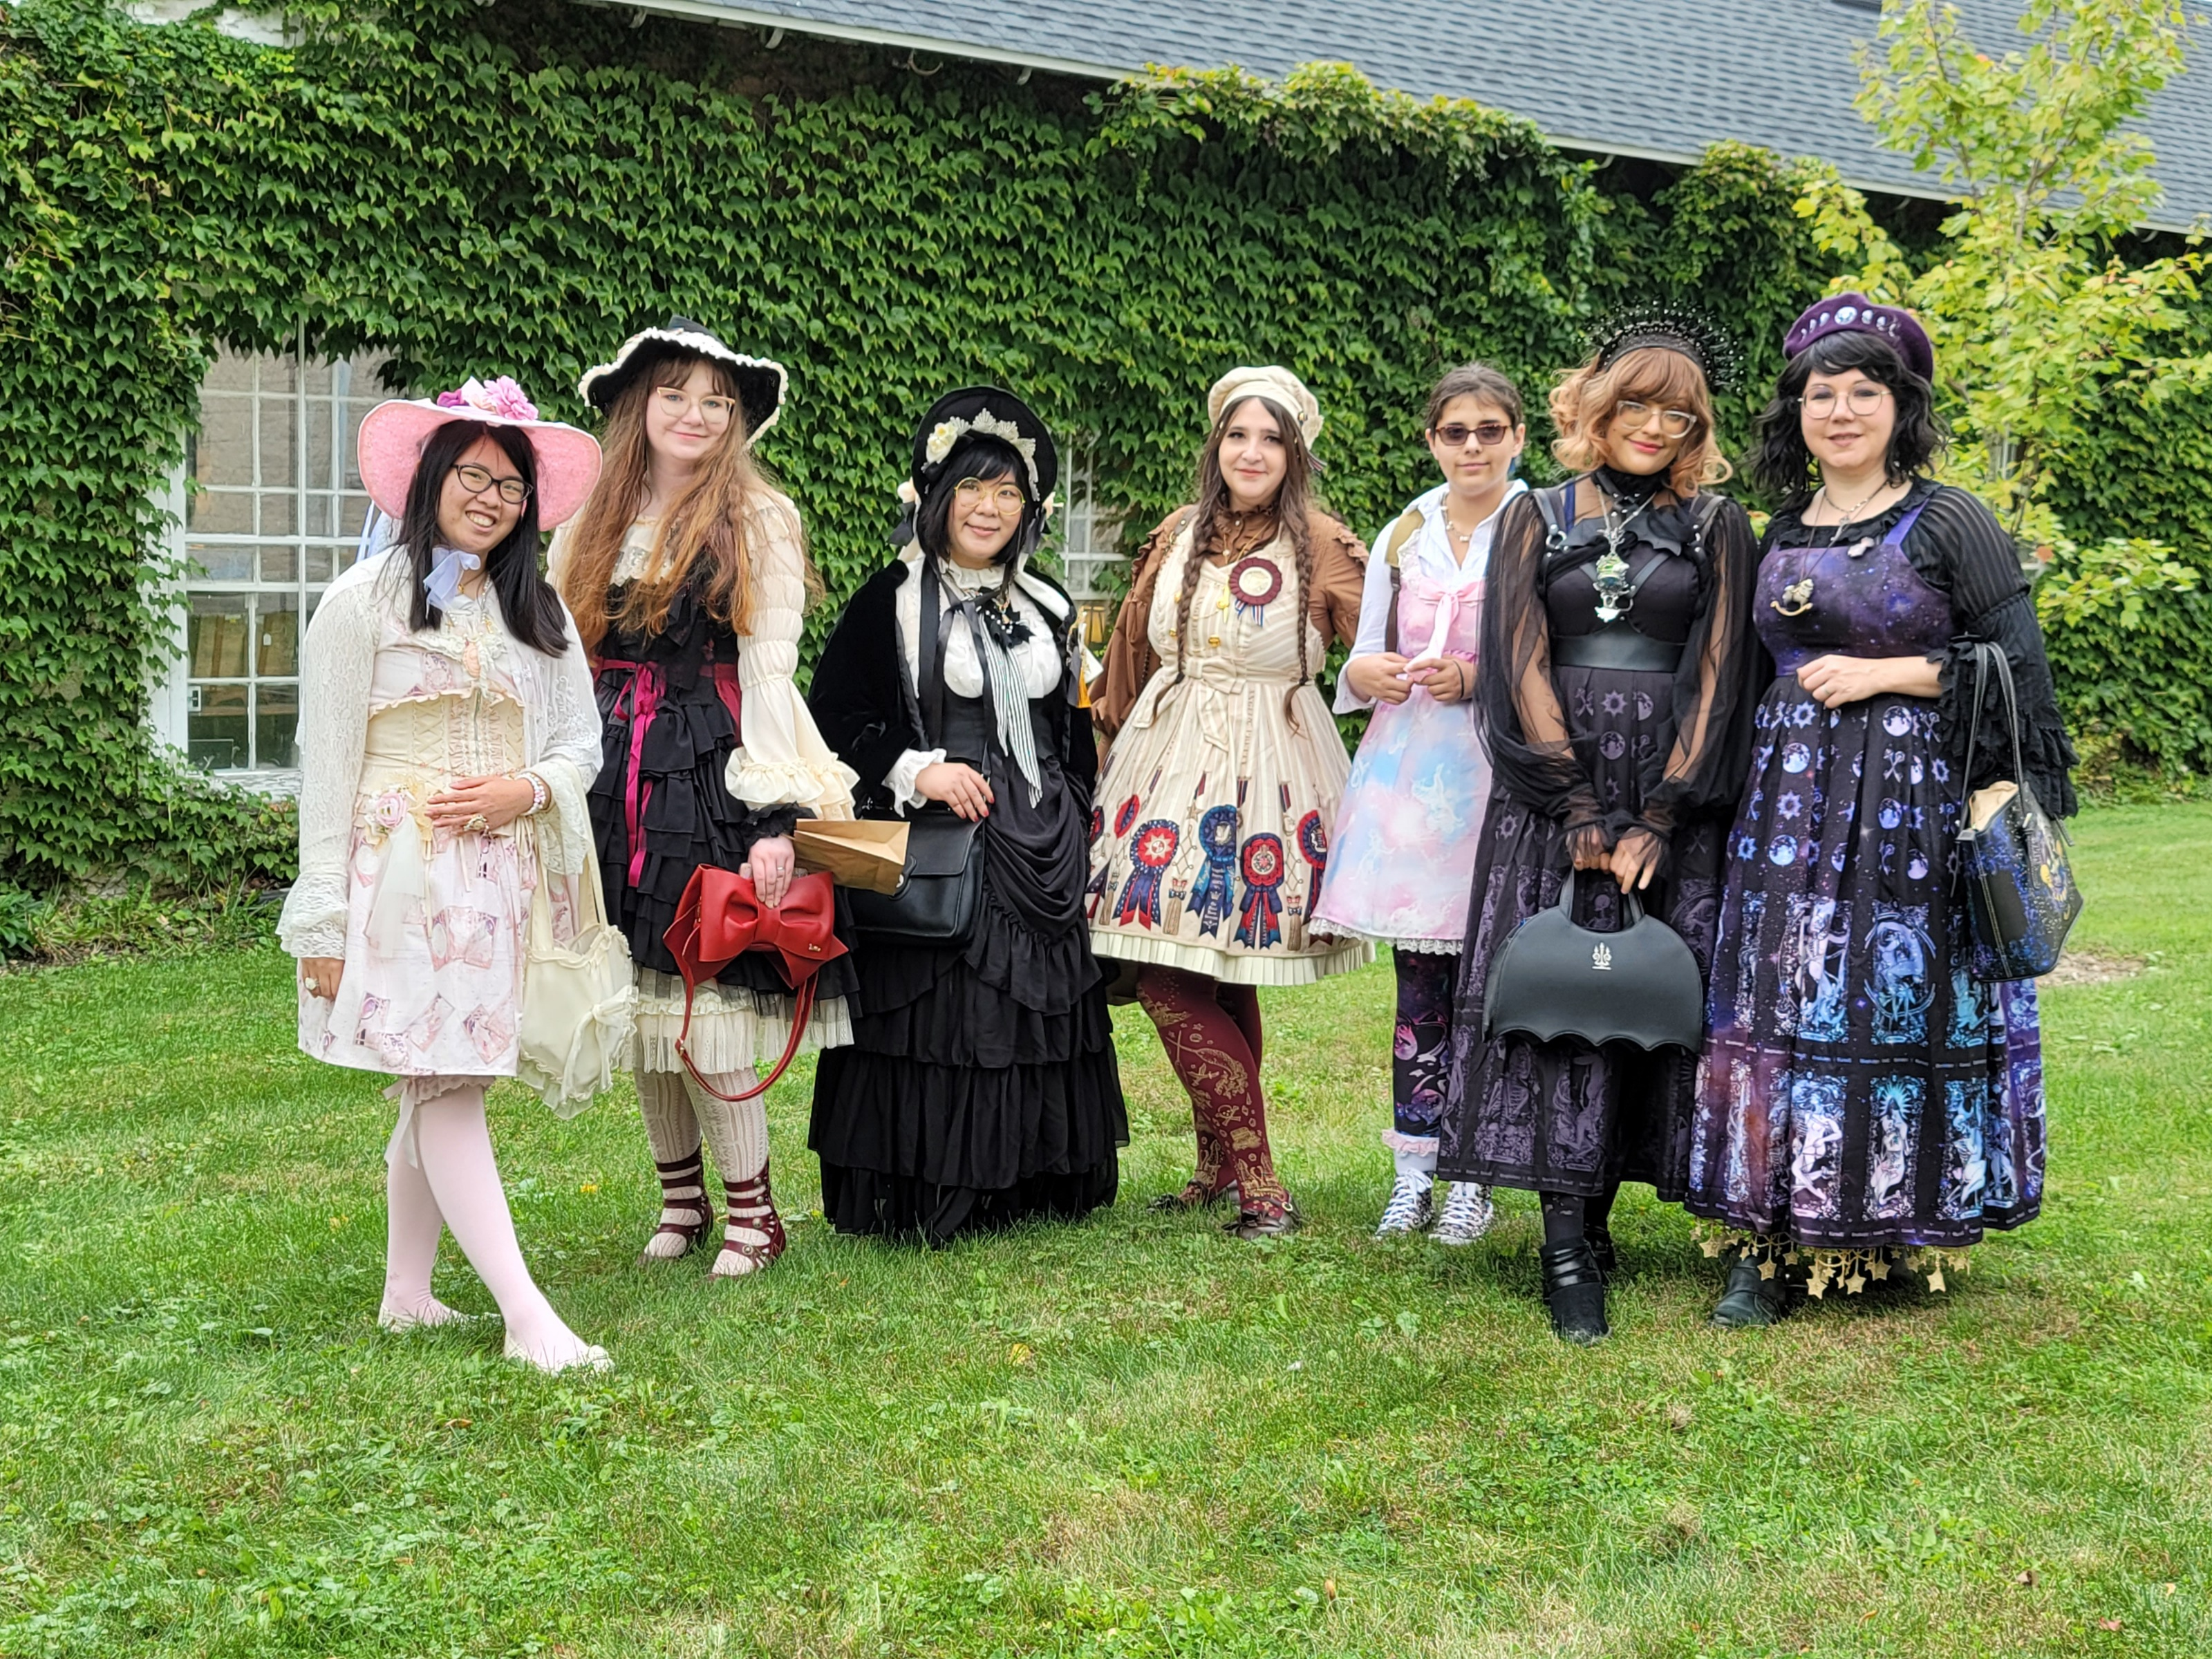 <strong>Several young ladies from Albany on their way to visit the Vanderbilt Mansion in Hyde Park and dressed for the occasion, decided to stop and visit Millbrook first. They are part of the Frilly J-Fasionista's. They enjoyed the music that was part of the Fall in Love with Millbrook event on Saturday, Oct. 9.<em>Photo by Judith O'Hara Balfe</em></strong>